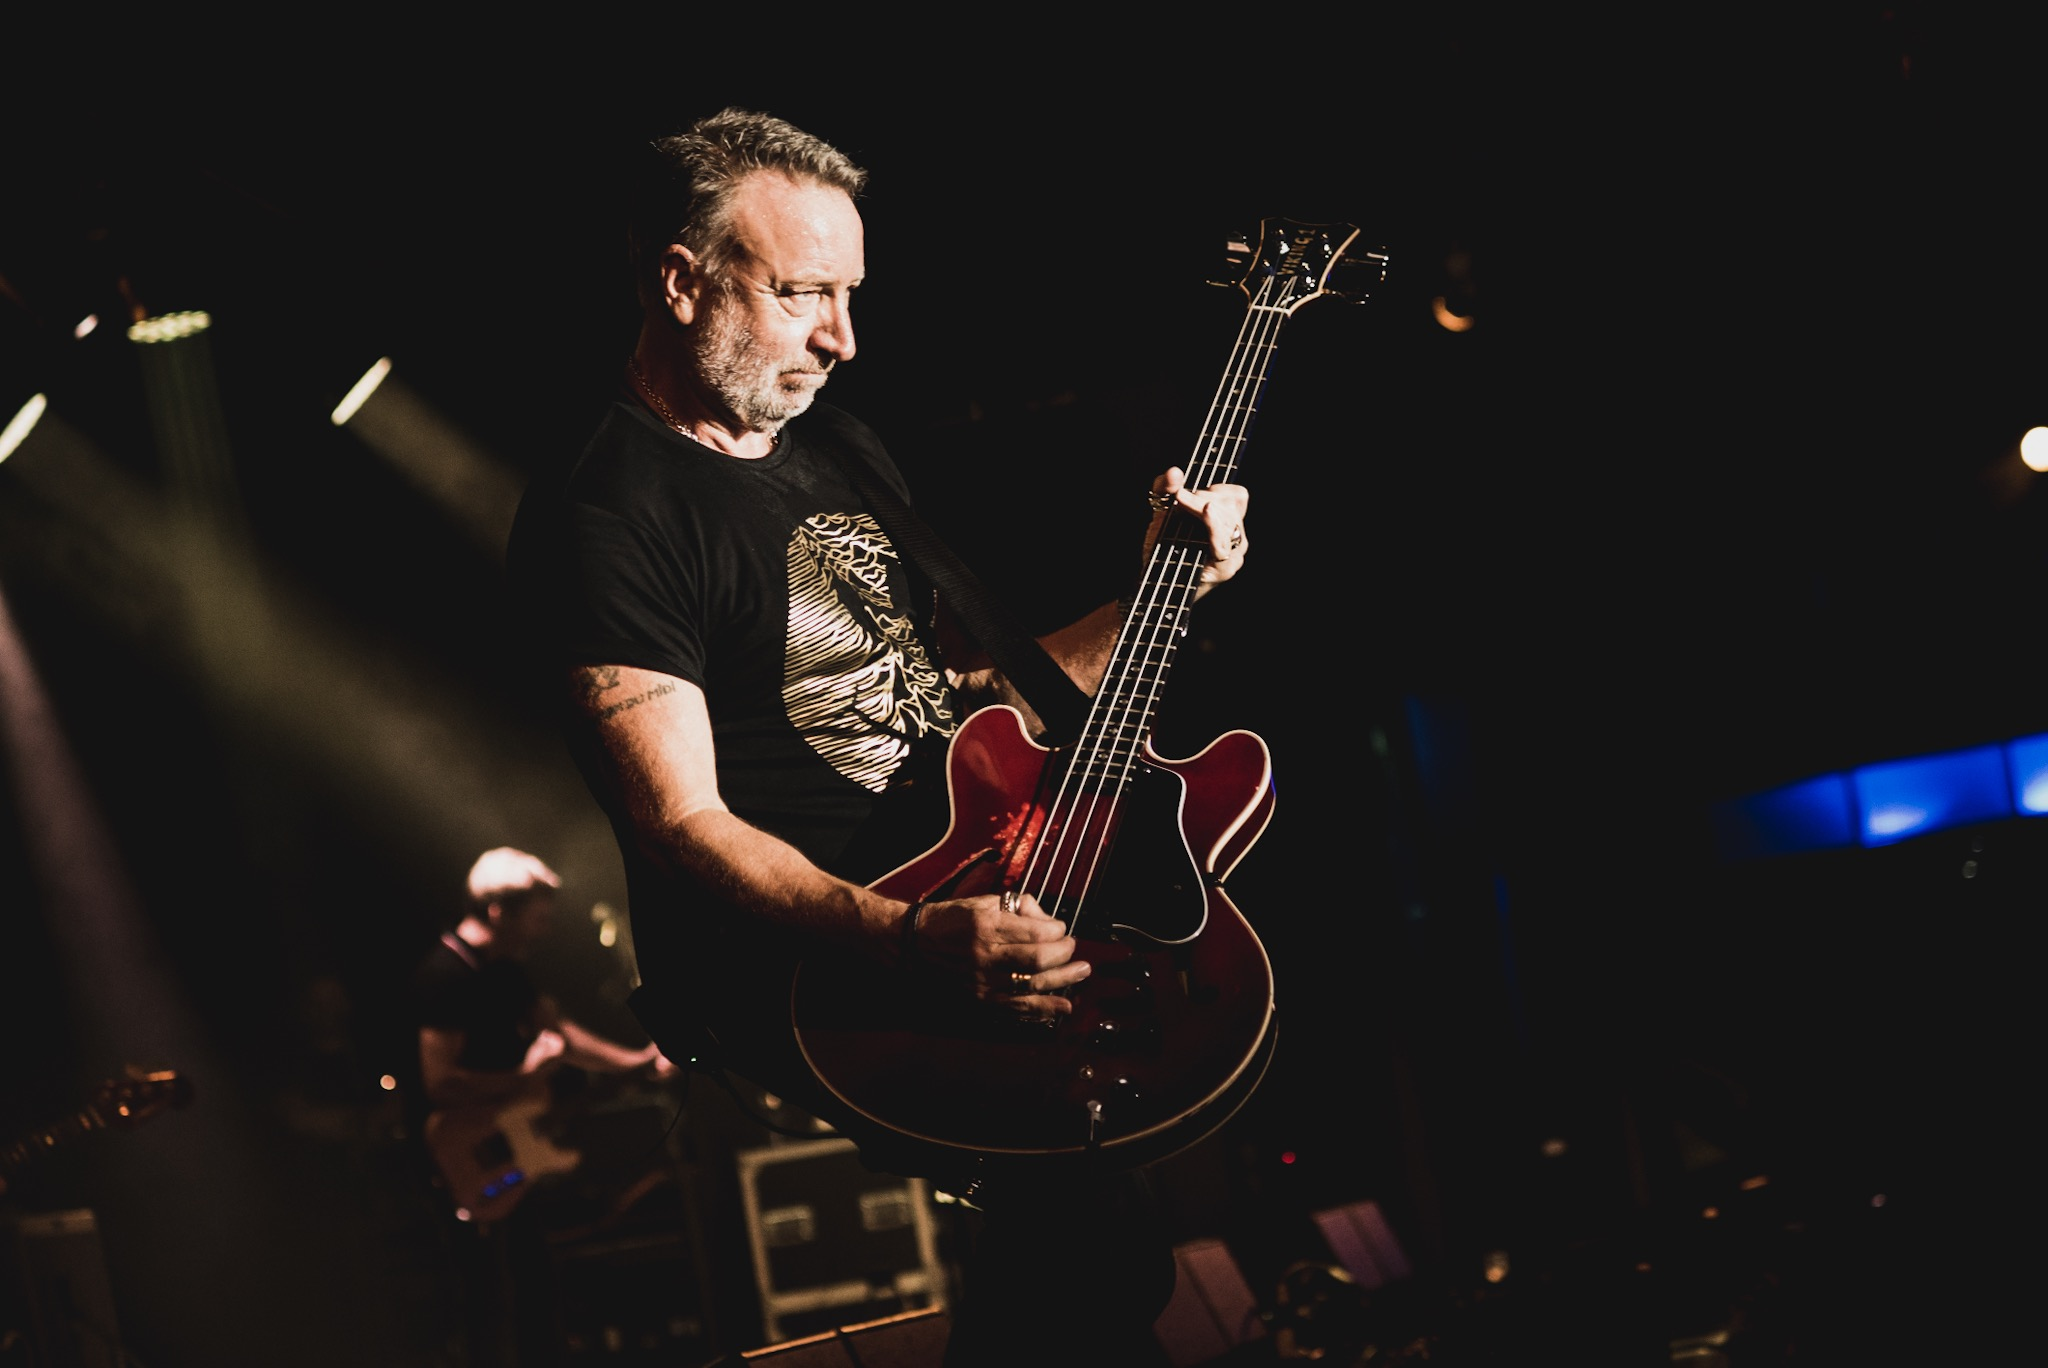 Rockaway Beach: Peter Hook and the Light